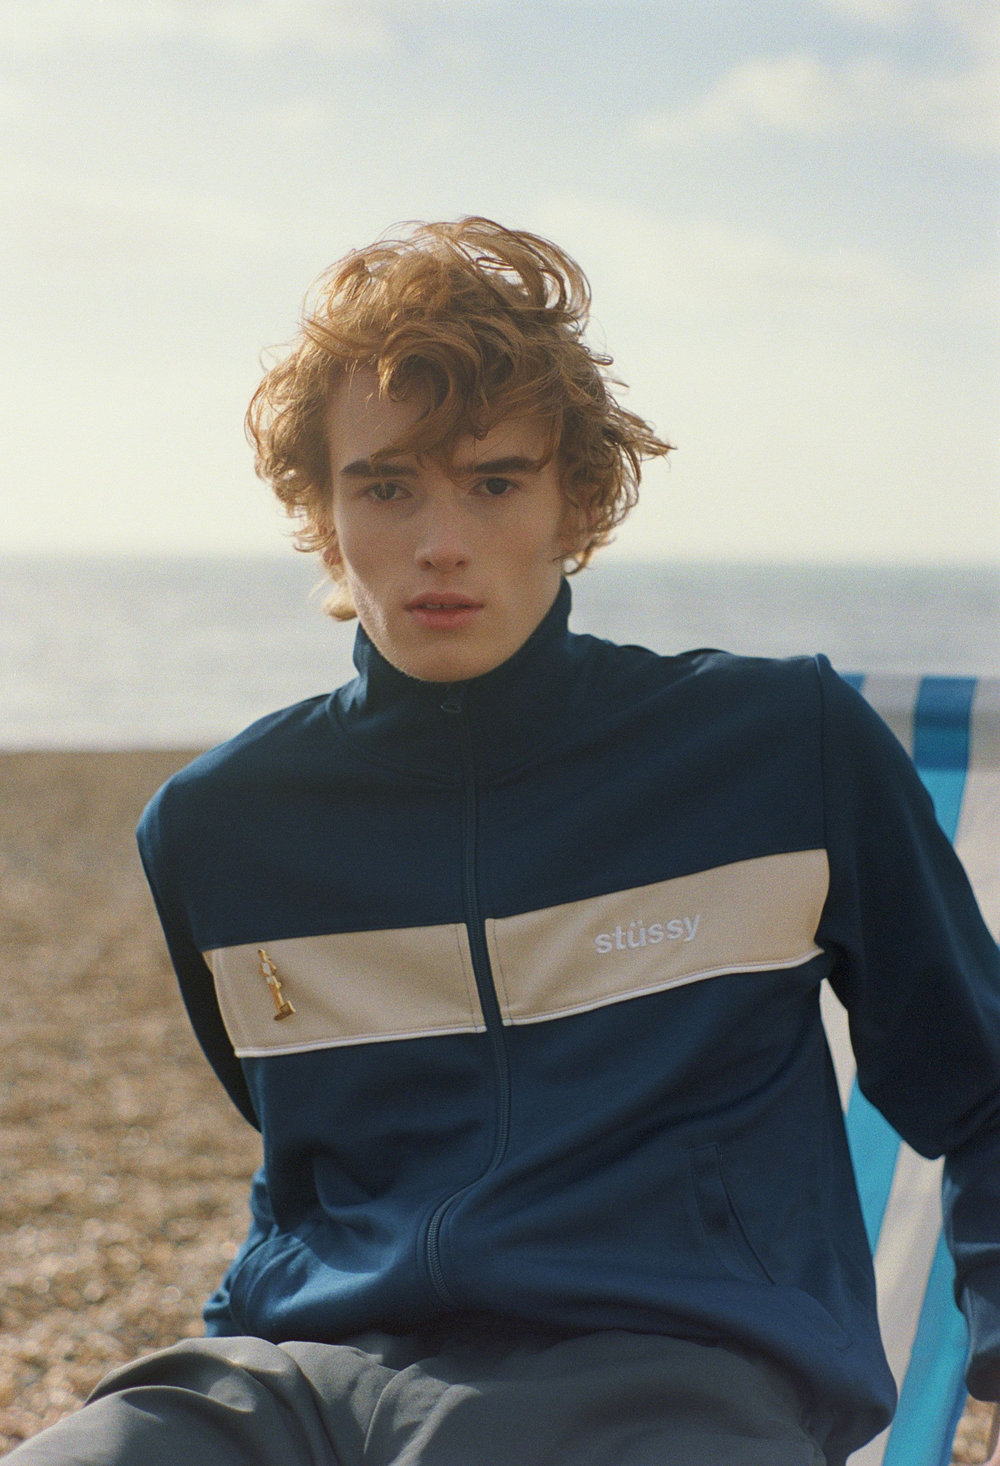 the ones 2 watch - Why see the world, when you got the beach     Art Direction / Styling / Casting    Cristina Chirila   Hair & Makeup    Sarah McIlwain-Bates  using MAC Cosmetics and Unite Haircare   Model(s)  Fyodor Houtheusen @  FIRST model management (London)